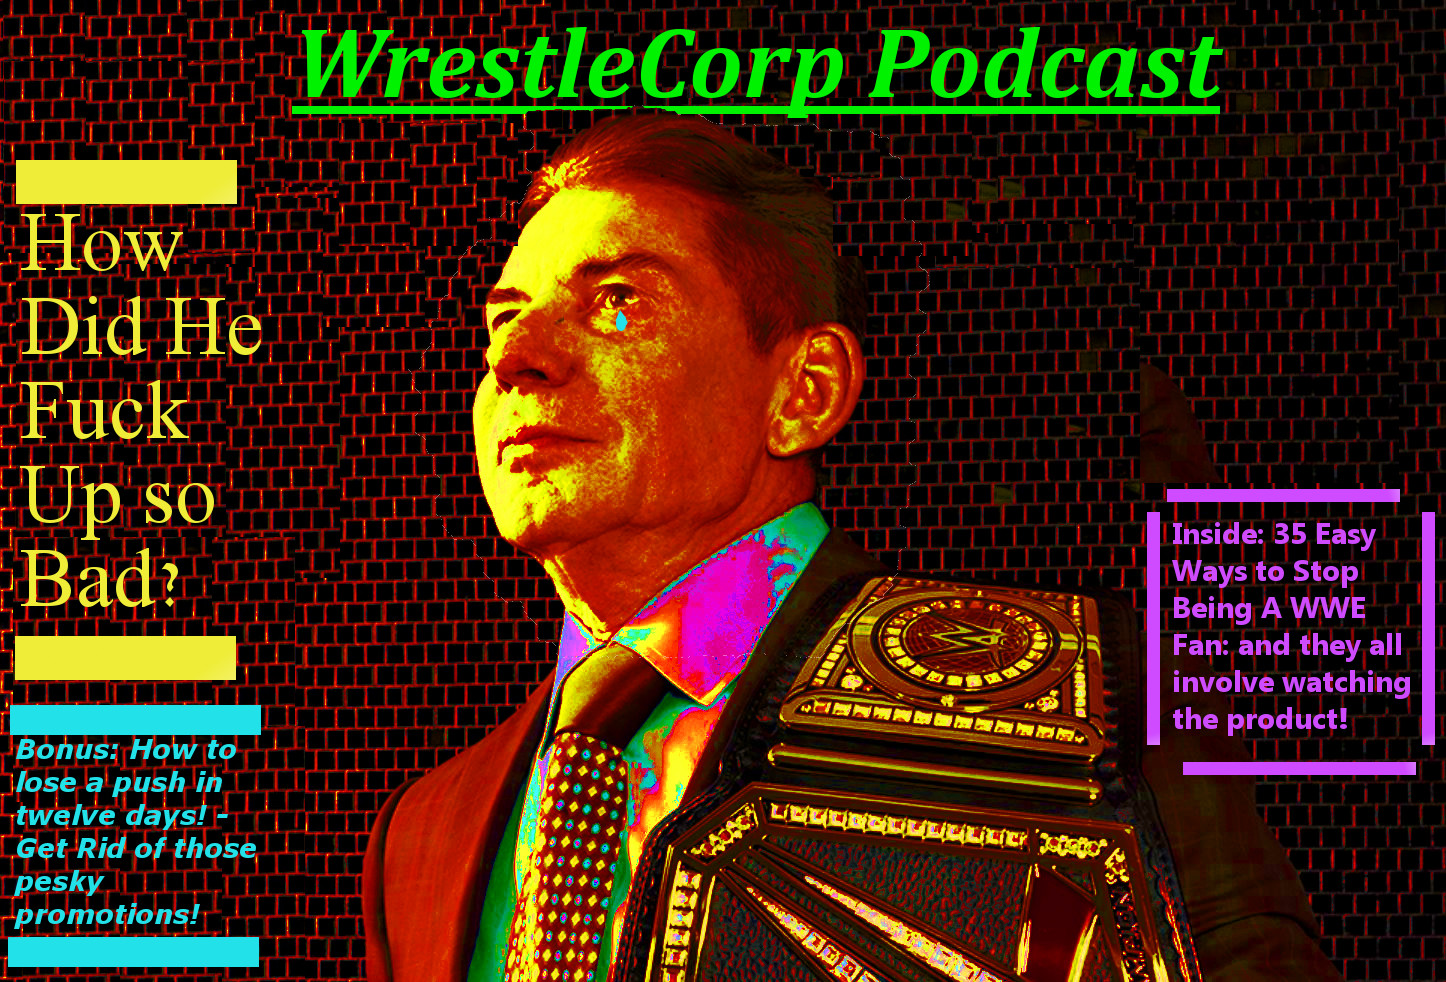 How Did We Get Here? Looking at How the WWE Screwed Up So Badly - WrestleCorp Podcast